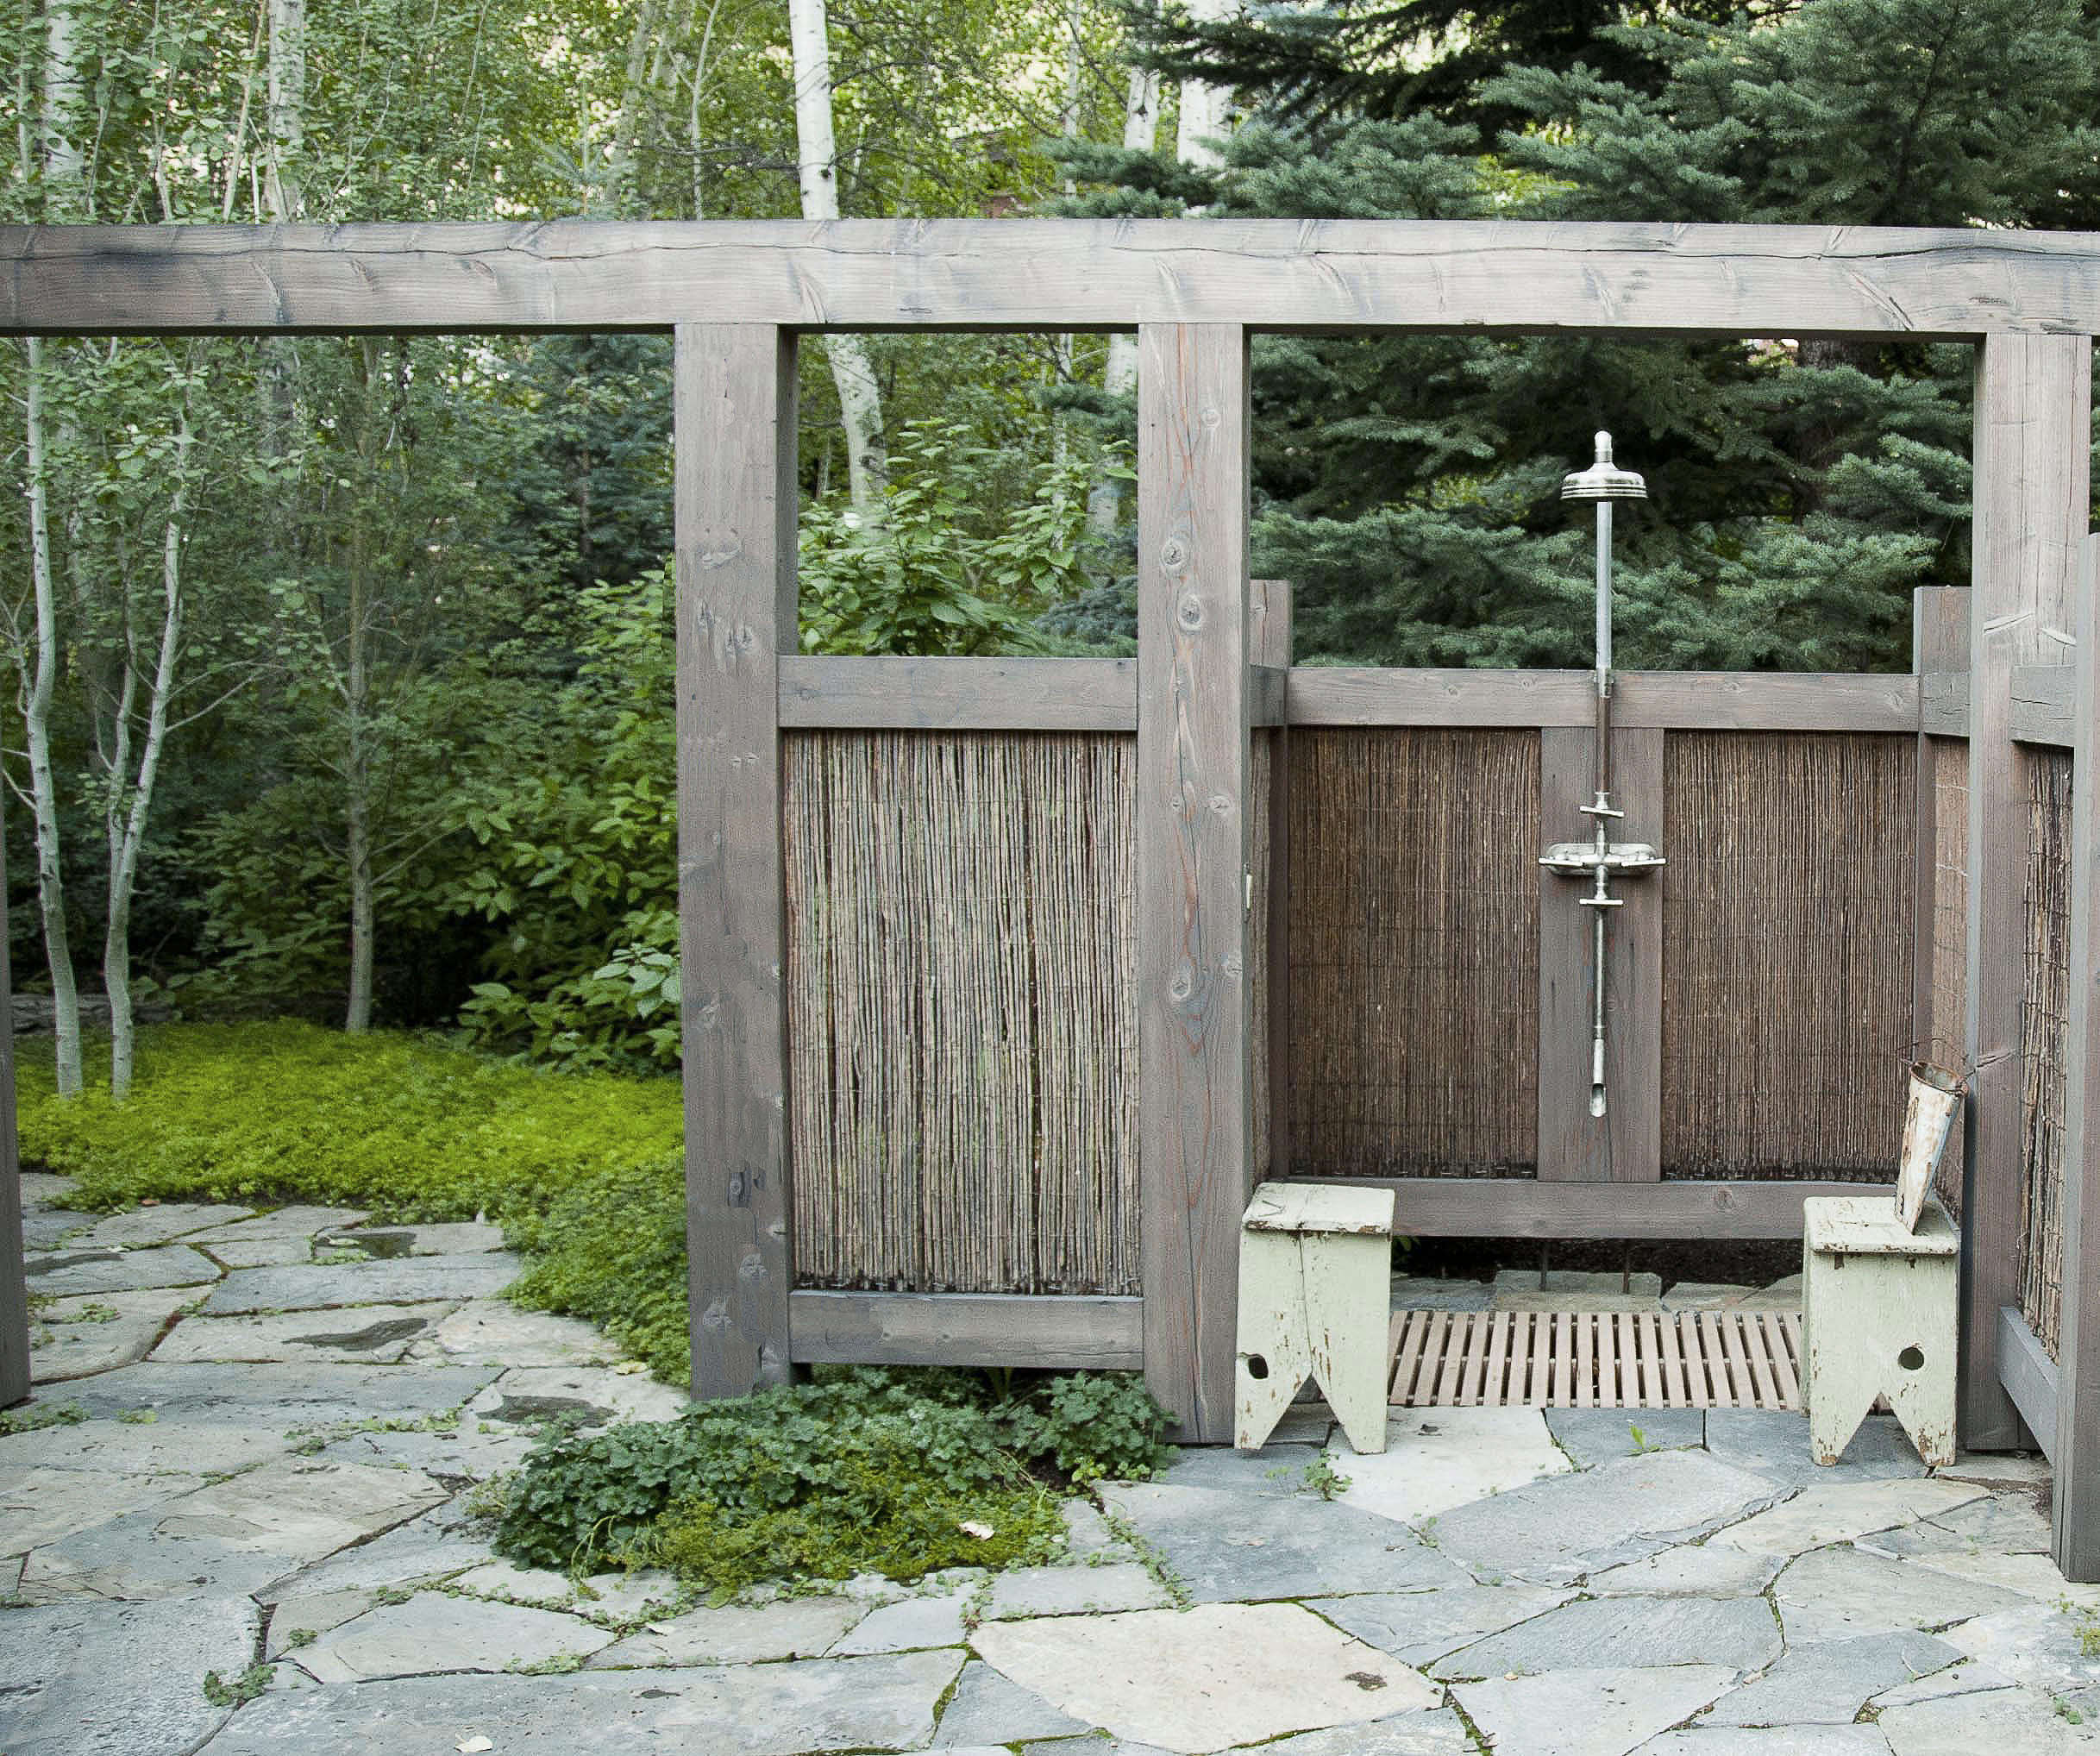 Rustic Pine Toung And Groove Interior Design: Private Idaho: A Rustic Outdoor Shower In Sun Valley